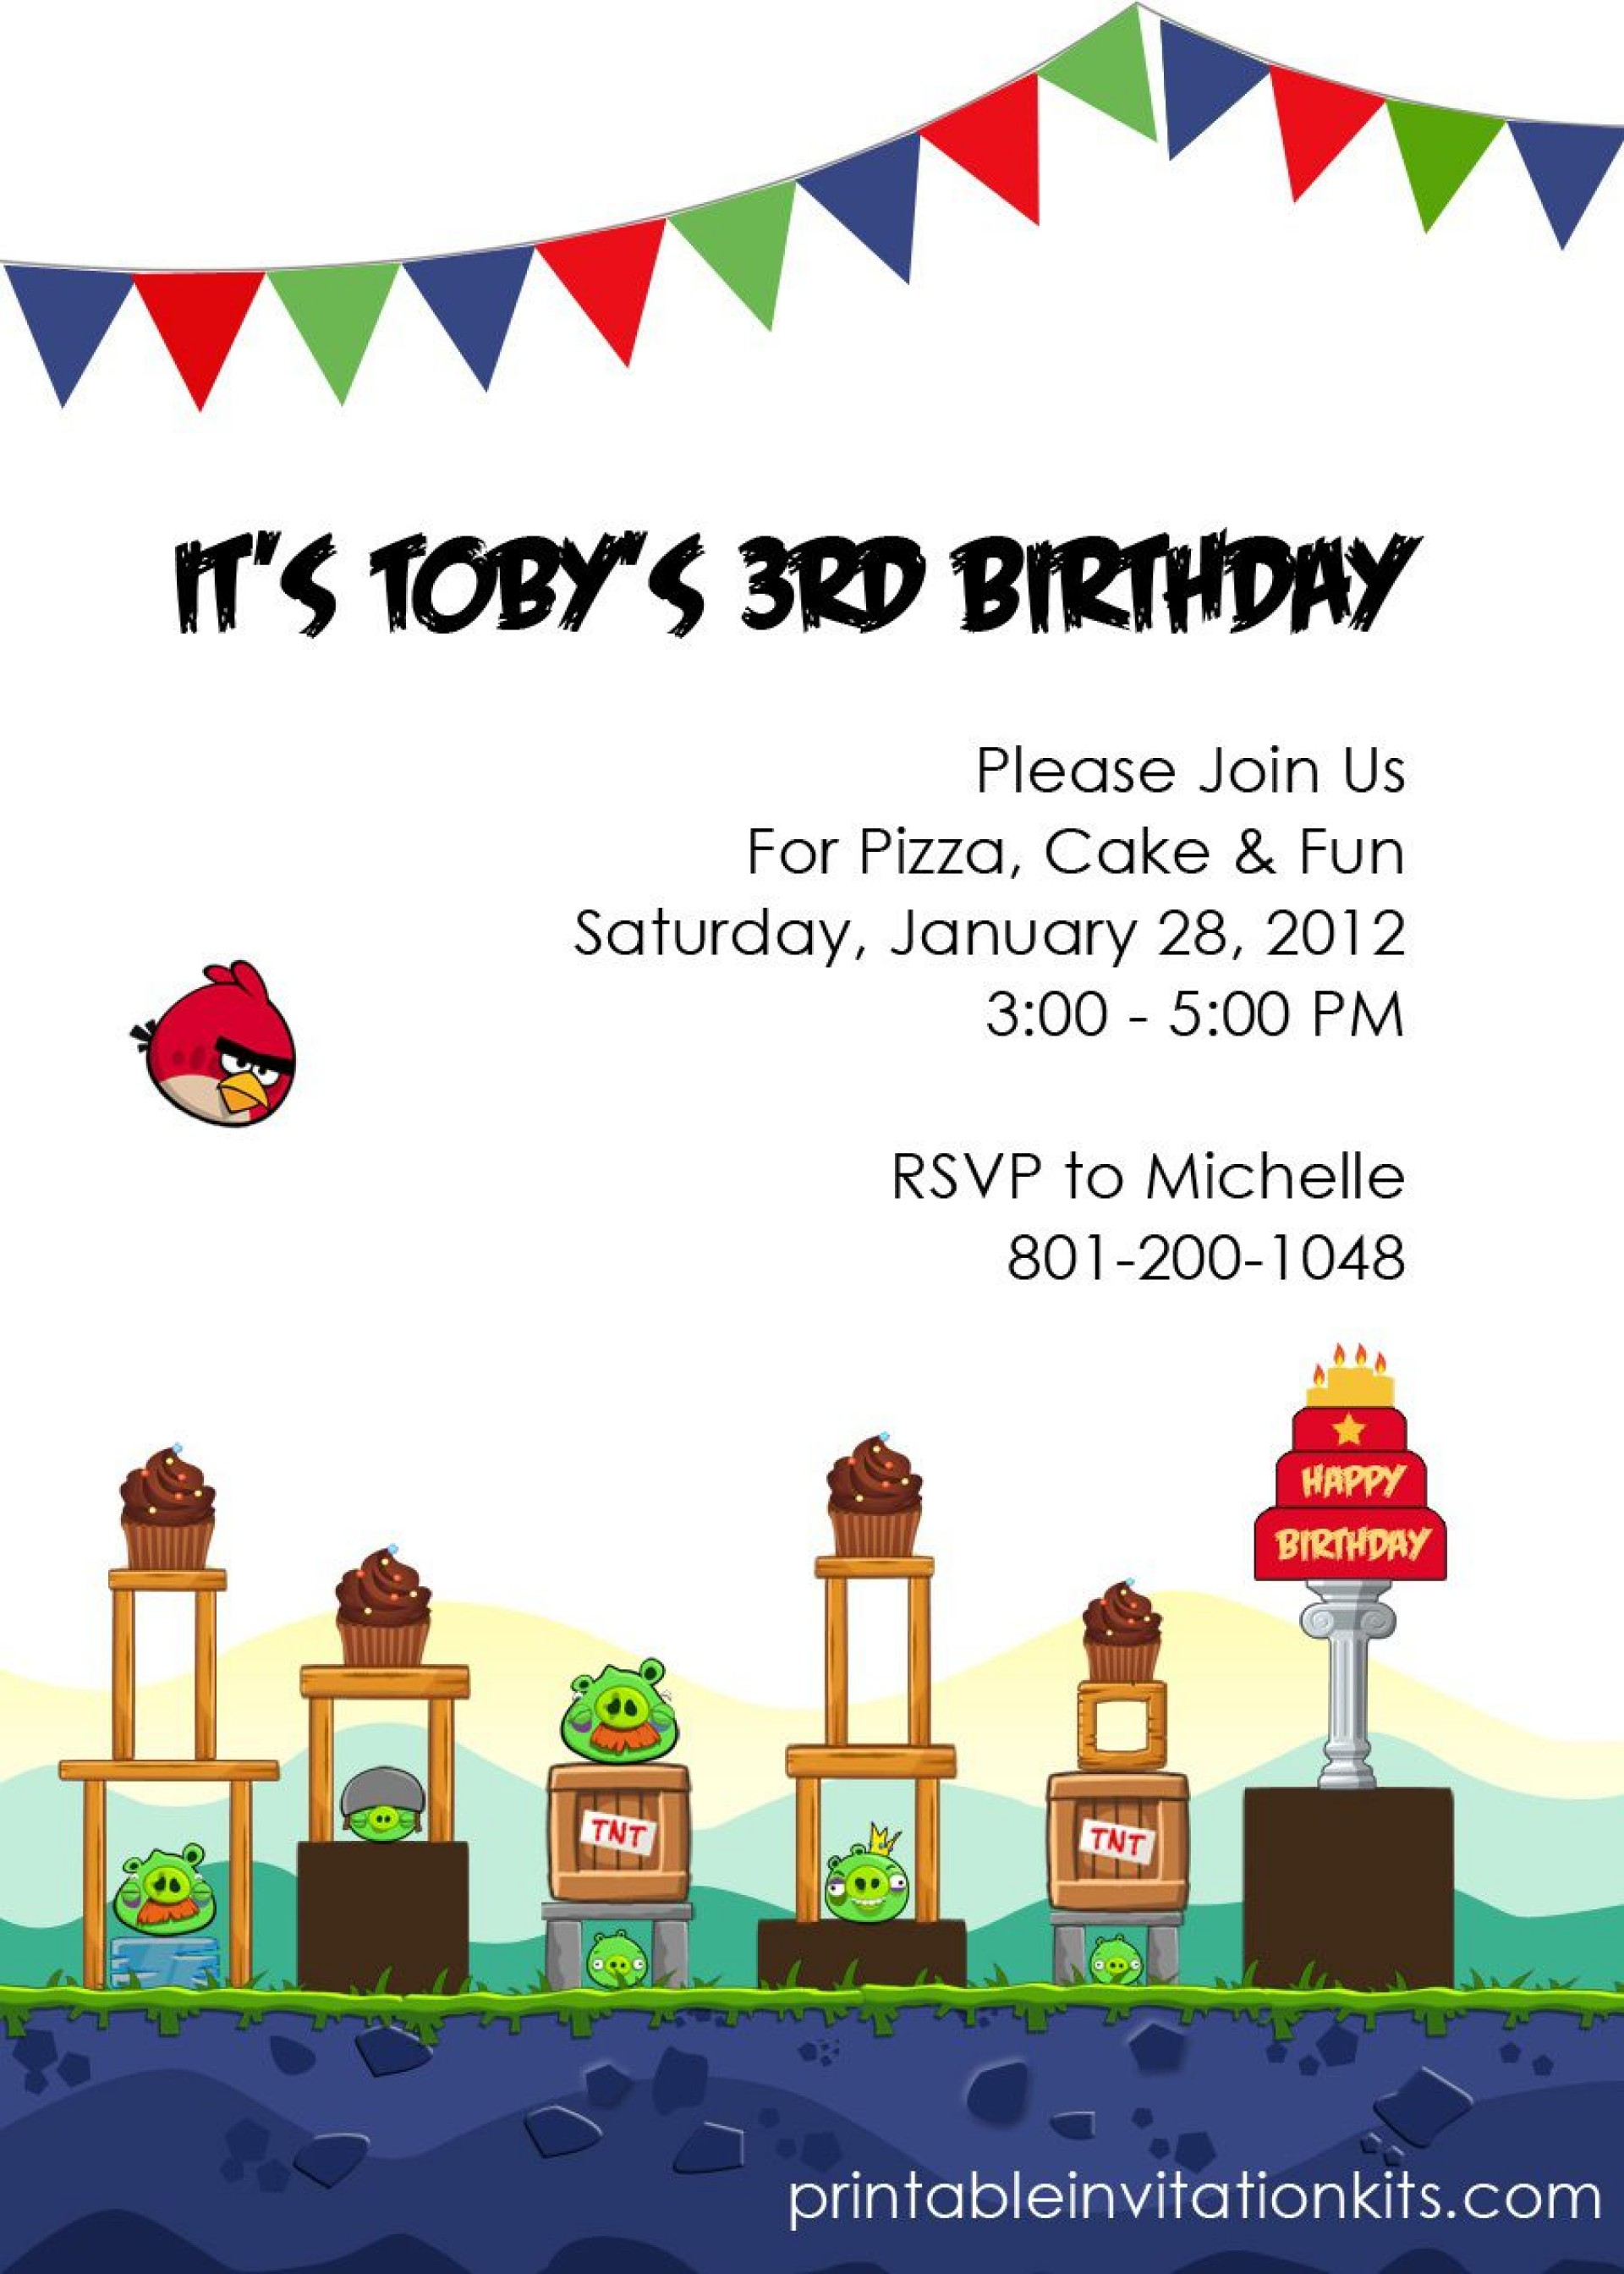 006 Archaicawful Birthday Party Invitation Template Word Picture  40th Wording Sample Unicorn Free1920